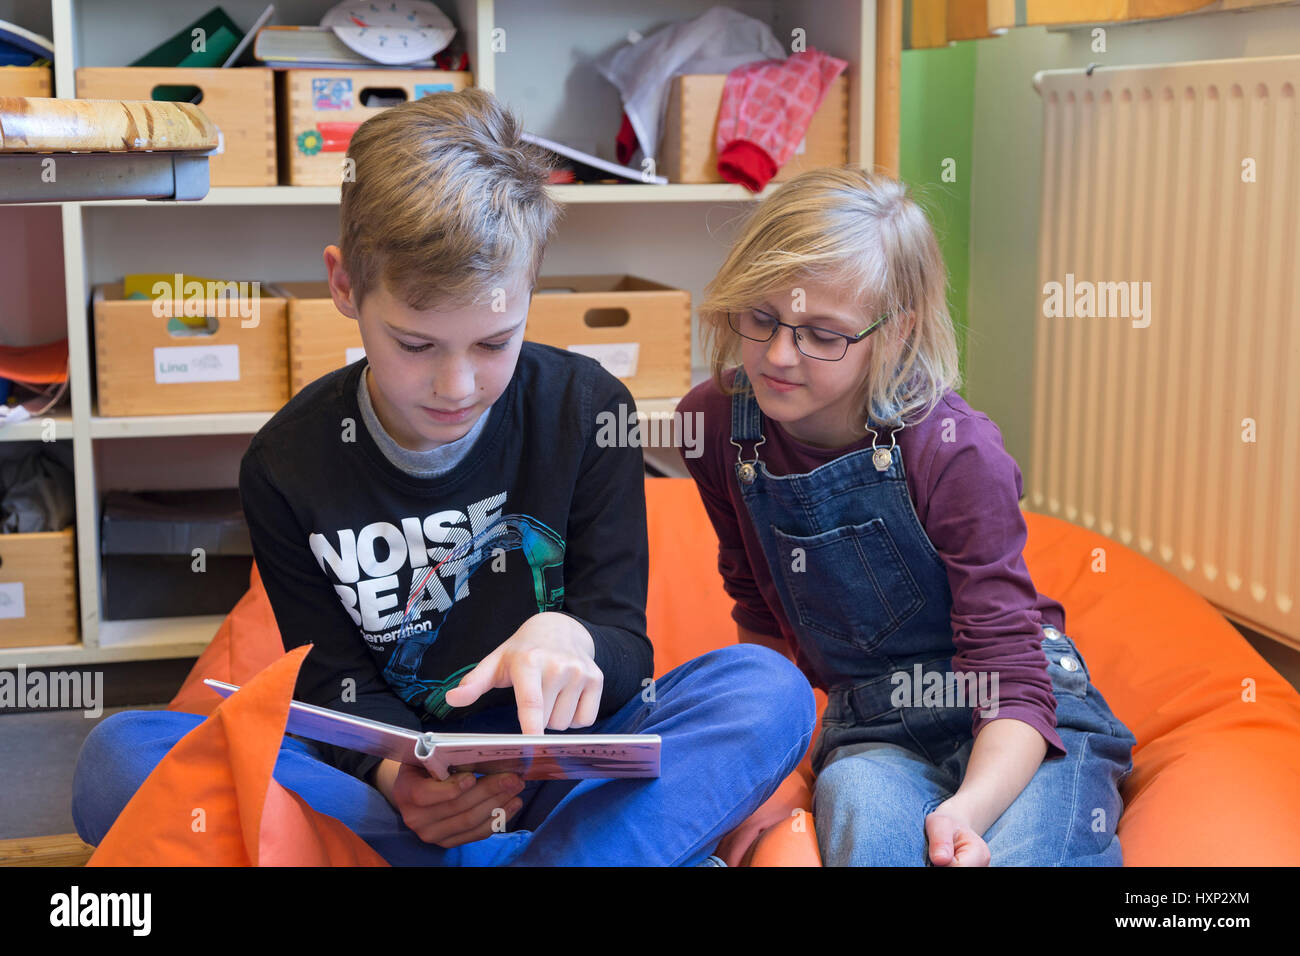 a boy and a girl reading a book together at primary school - Stock Image